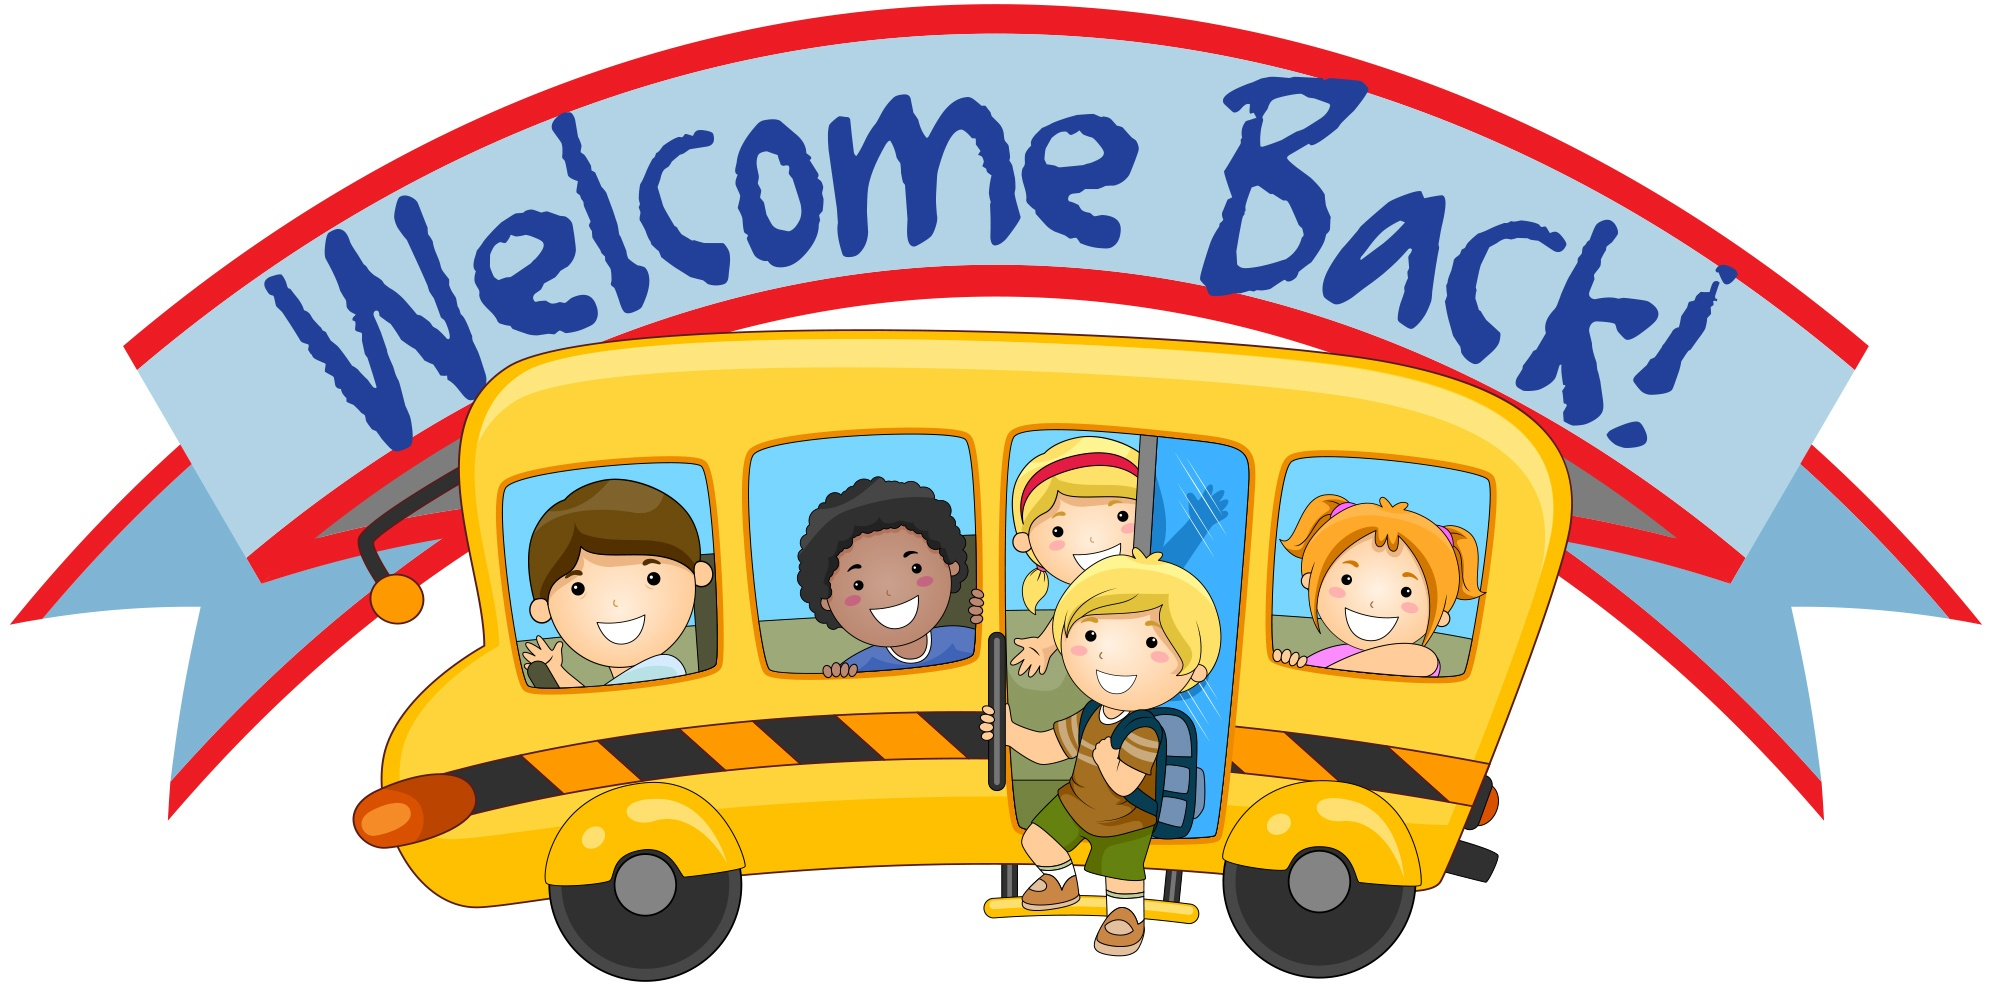 first day of school packet rh littlecedarspta org welcome back to school owl clipart animated welcome back to school clipart